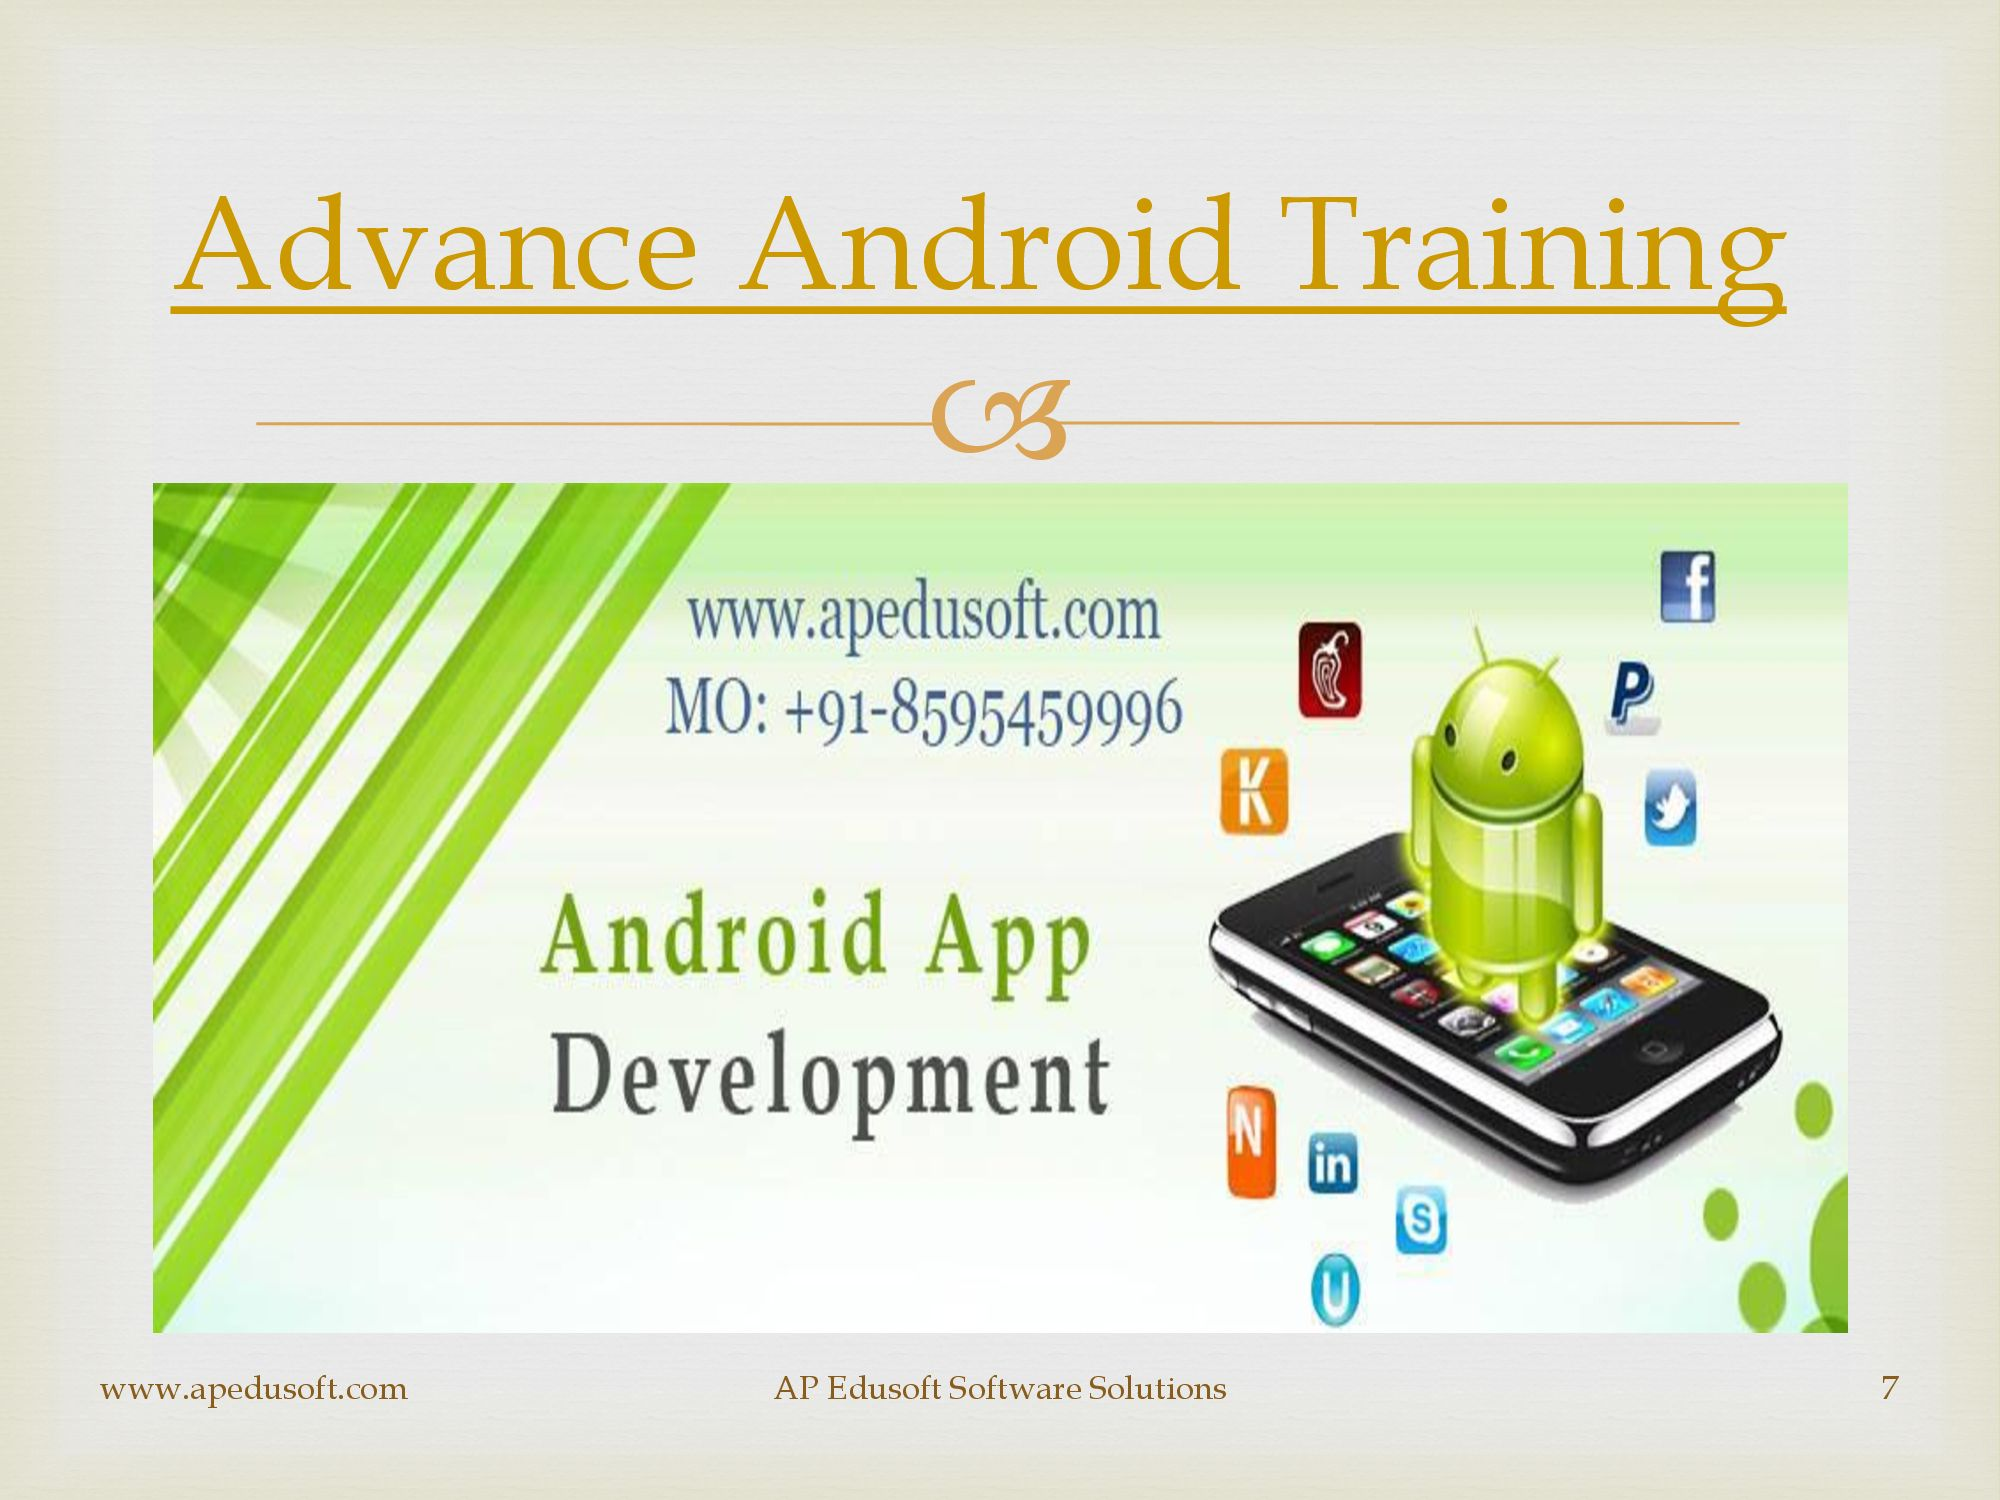 AP Edusoft Software Solutions is leading Mobile